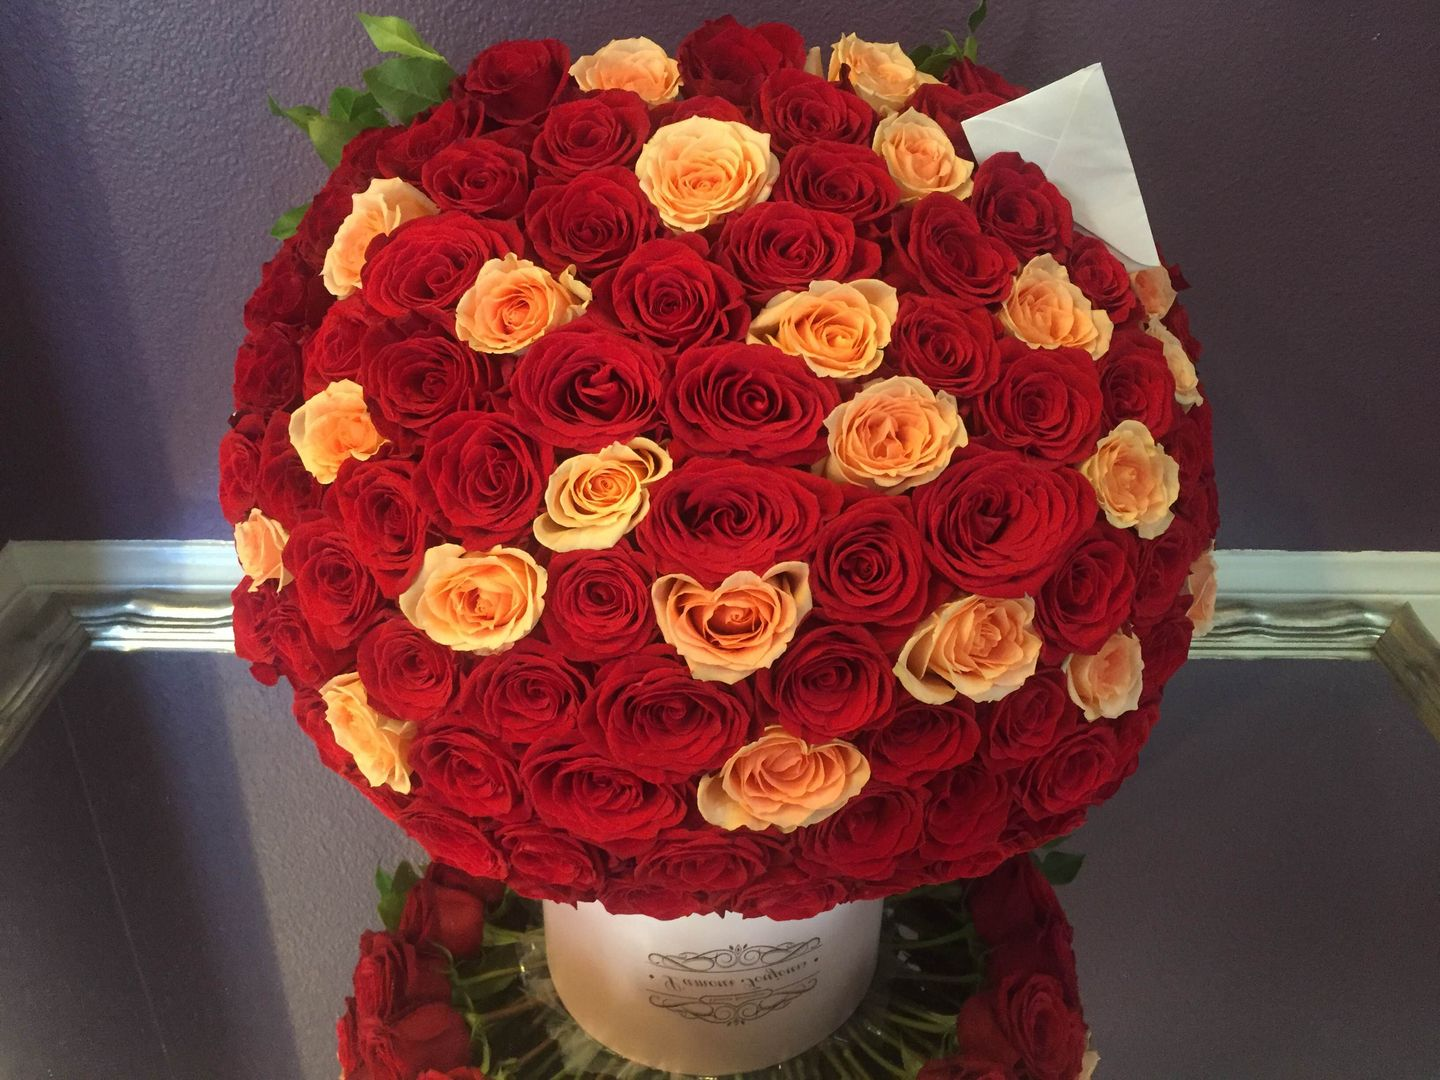 Flower Delivery In Orange County For Anniversaries And Birthdays